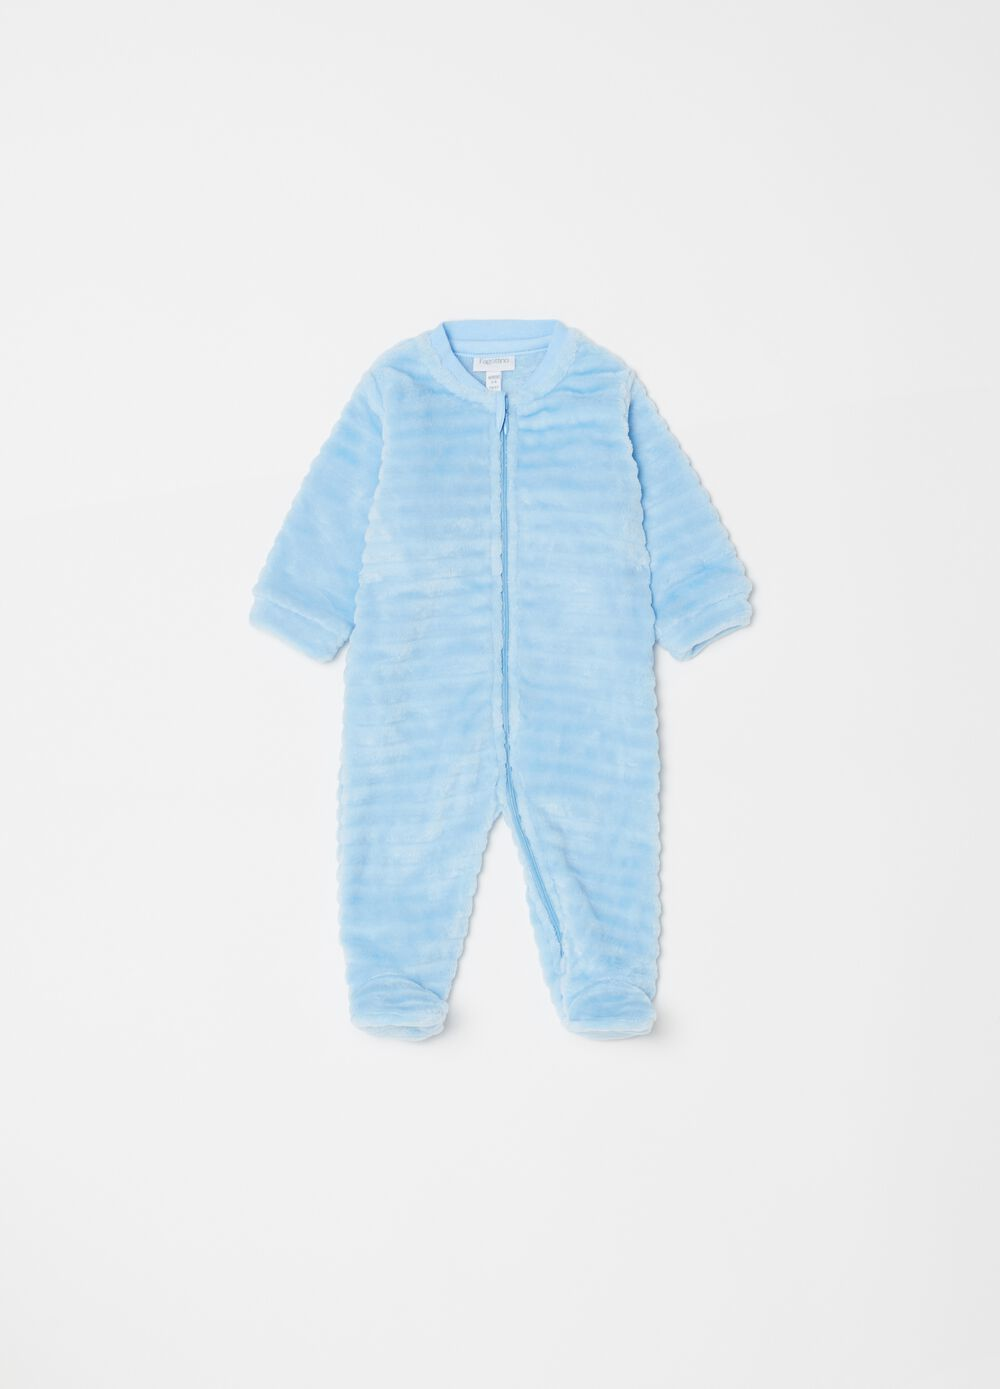 Faux fur onesie with feet and zip